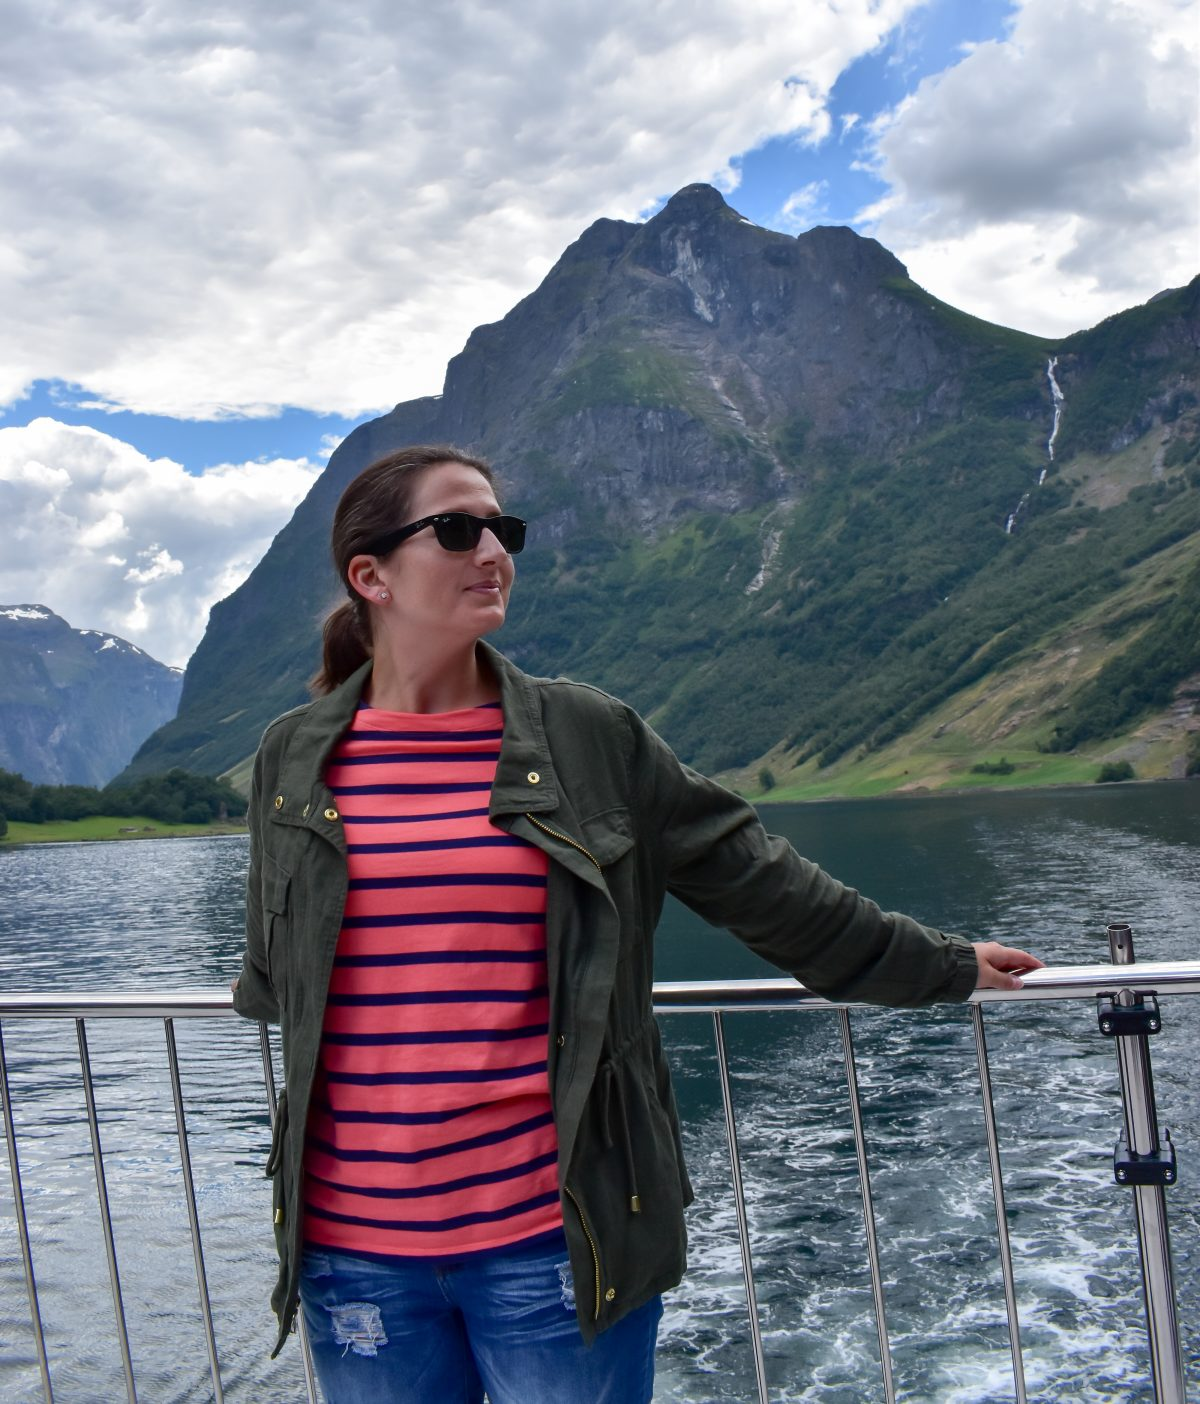 Erin wears a linen blend jacket over a nautical striped tee on a Fjord cruise in Norway.